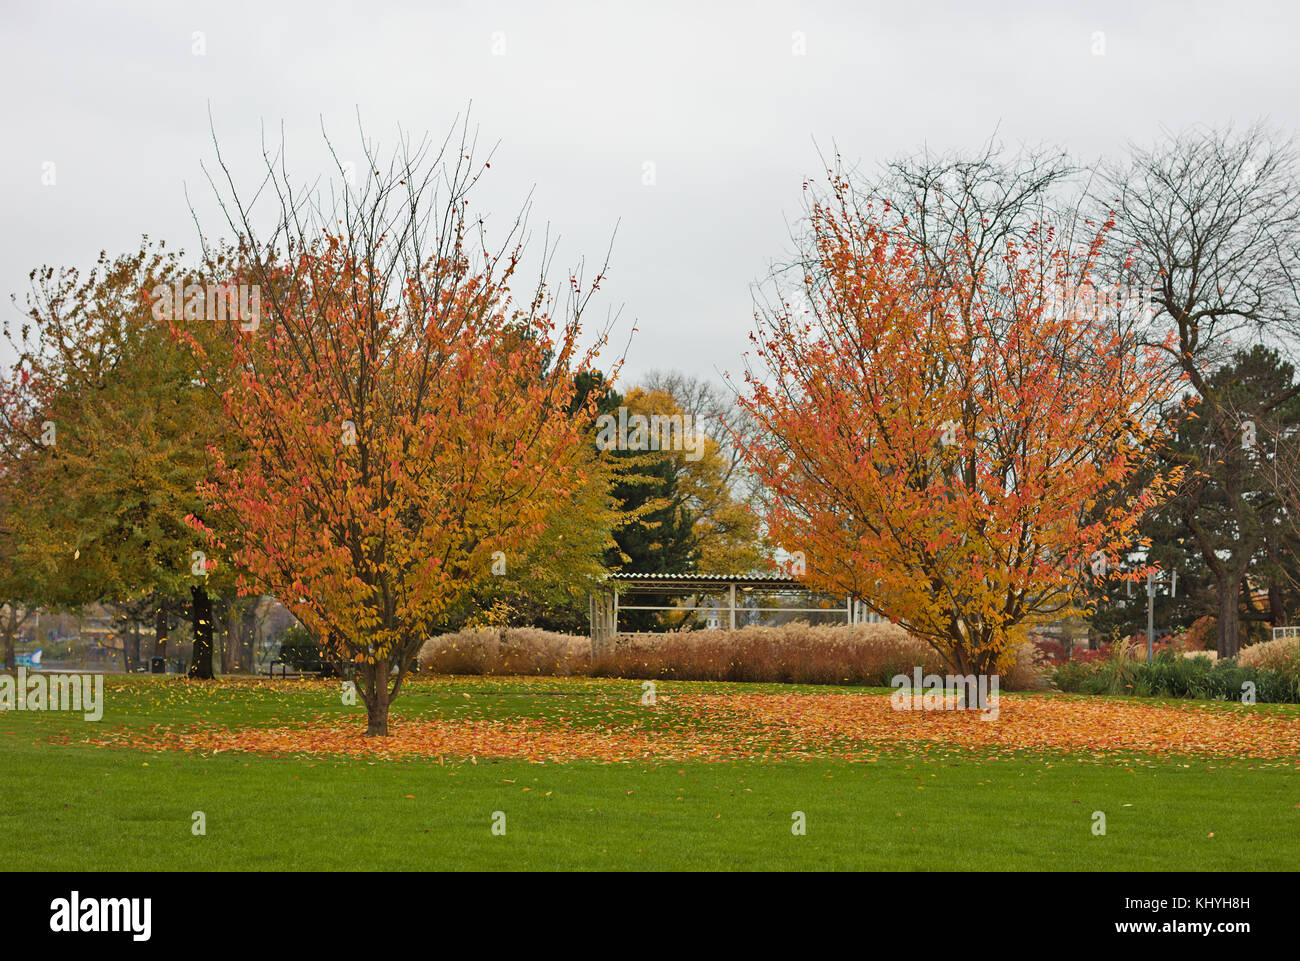 autumn-trees-with-coloured-leaves-KHYH8H